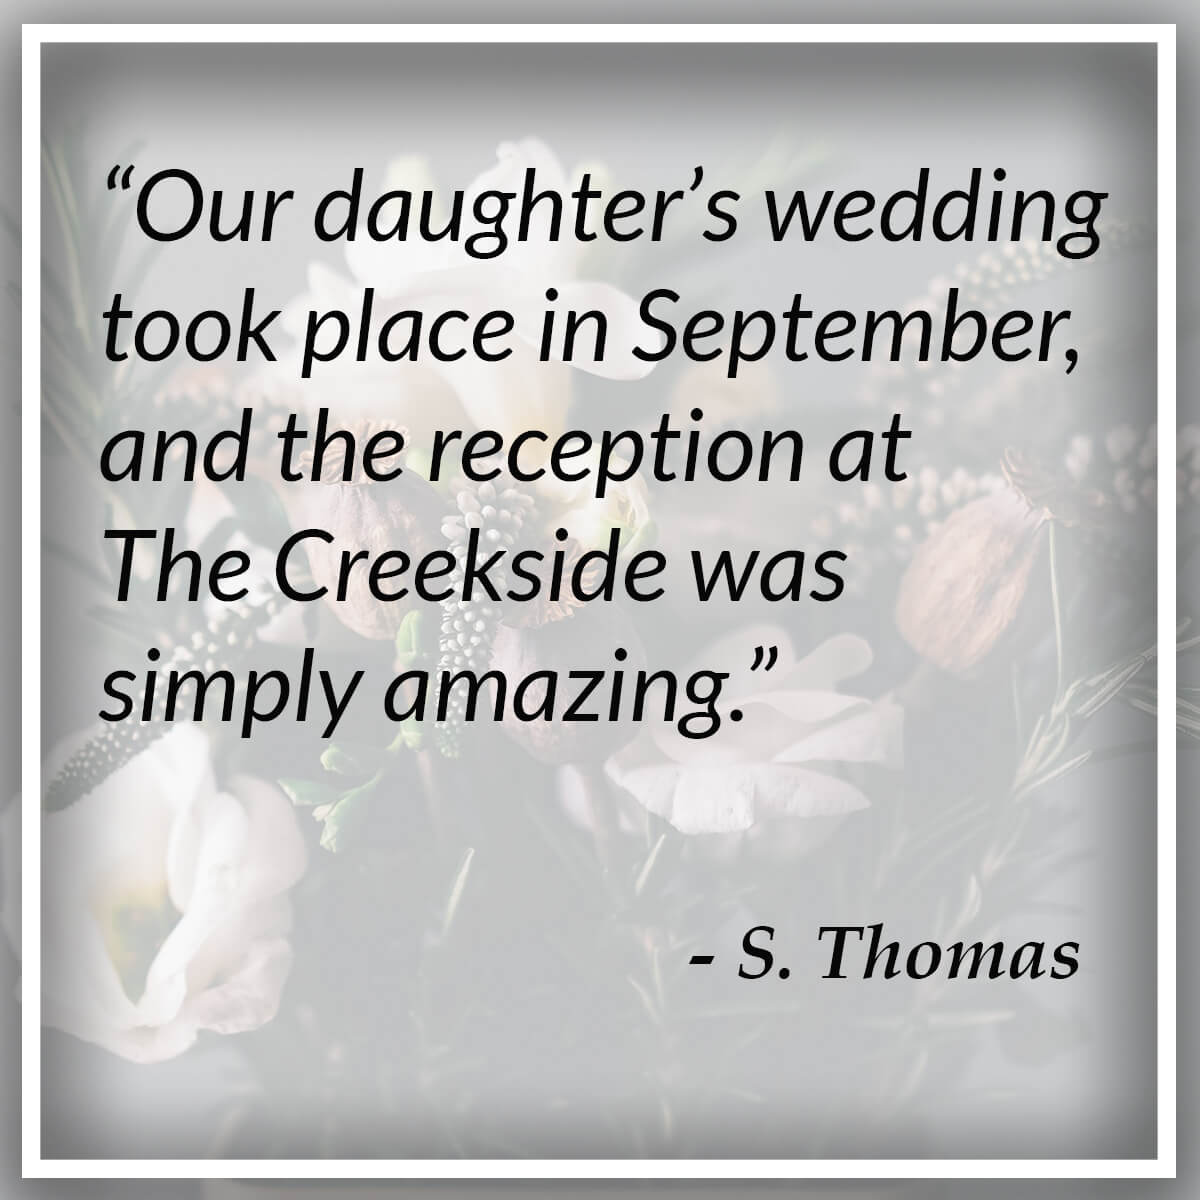 Our daughter's wedding took place in September, and the reception at The Creekside was simply amazing - S. Thomas